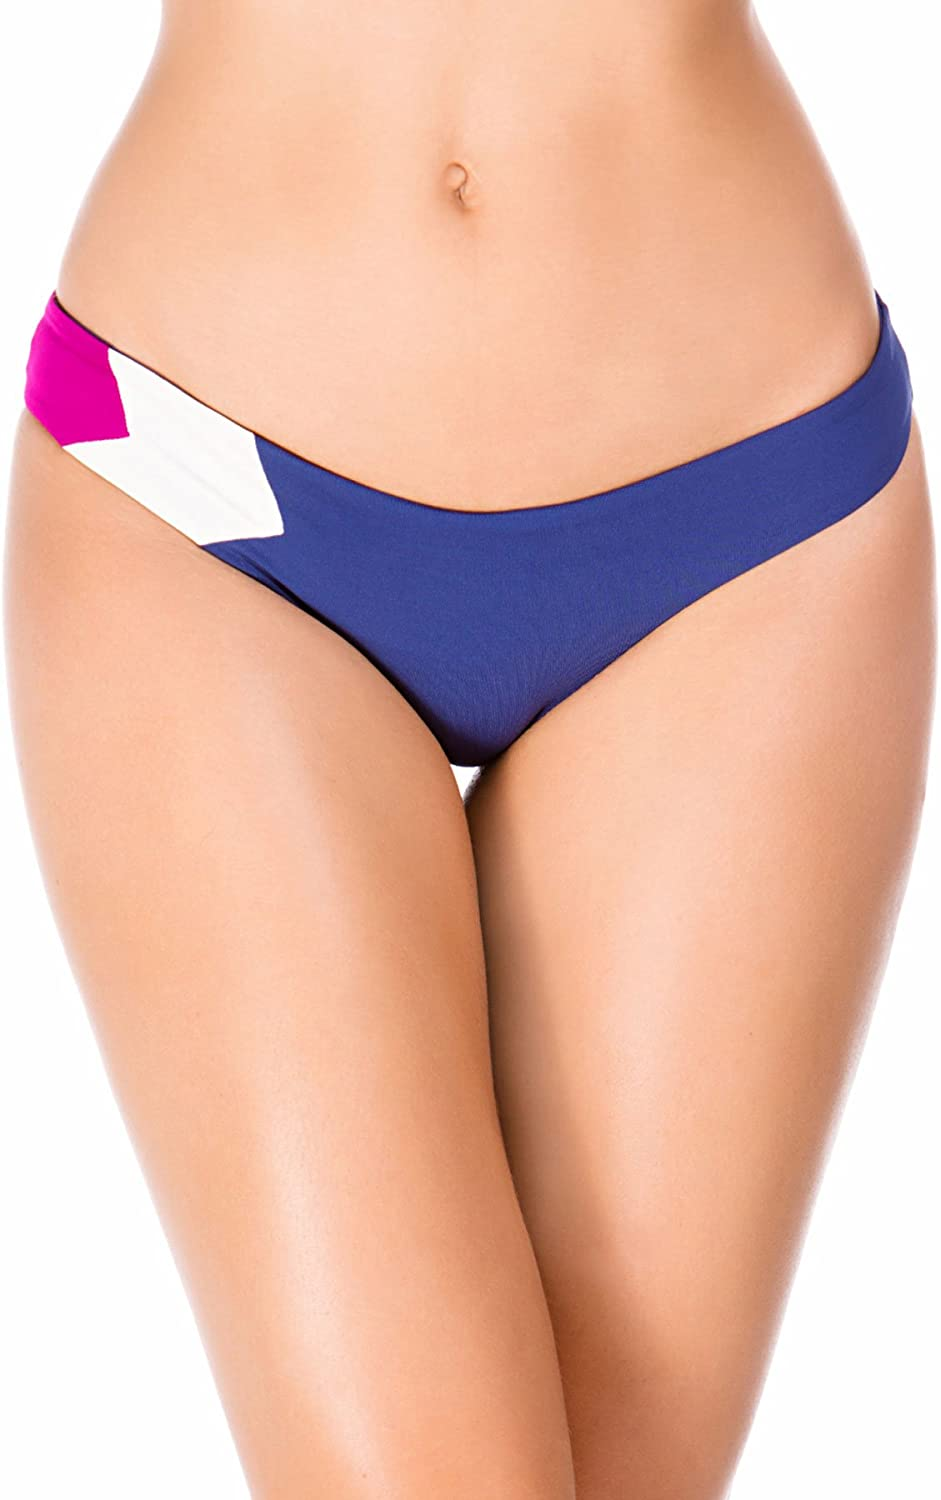 LSpace Color High quality Blocked Geo Hipster New arrival Bikini - Bottom Women's